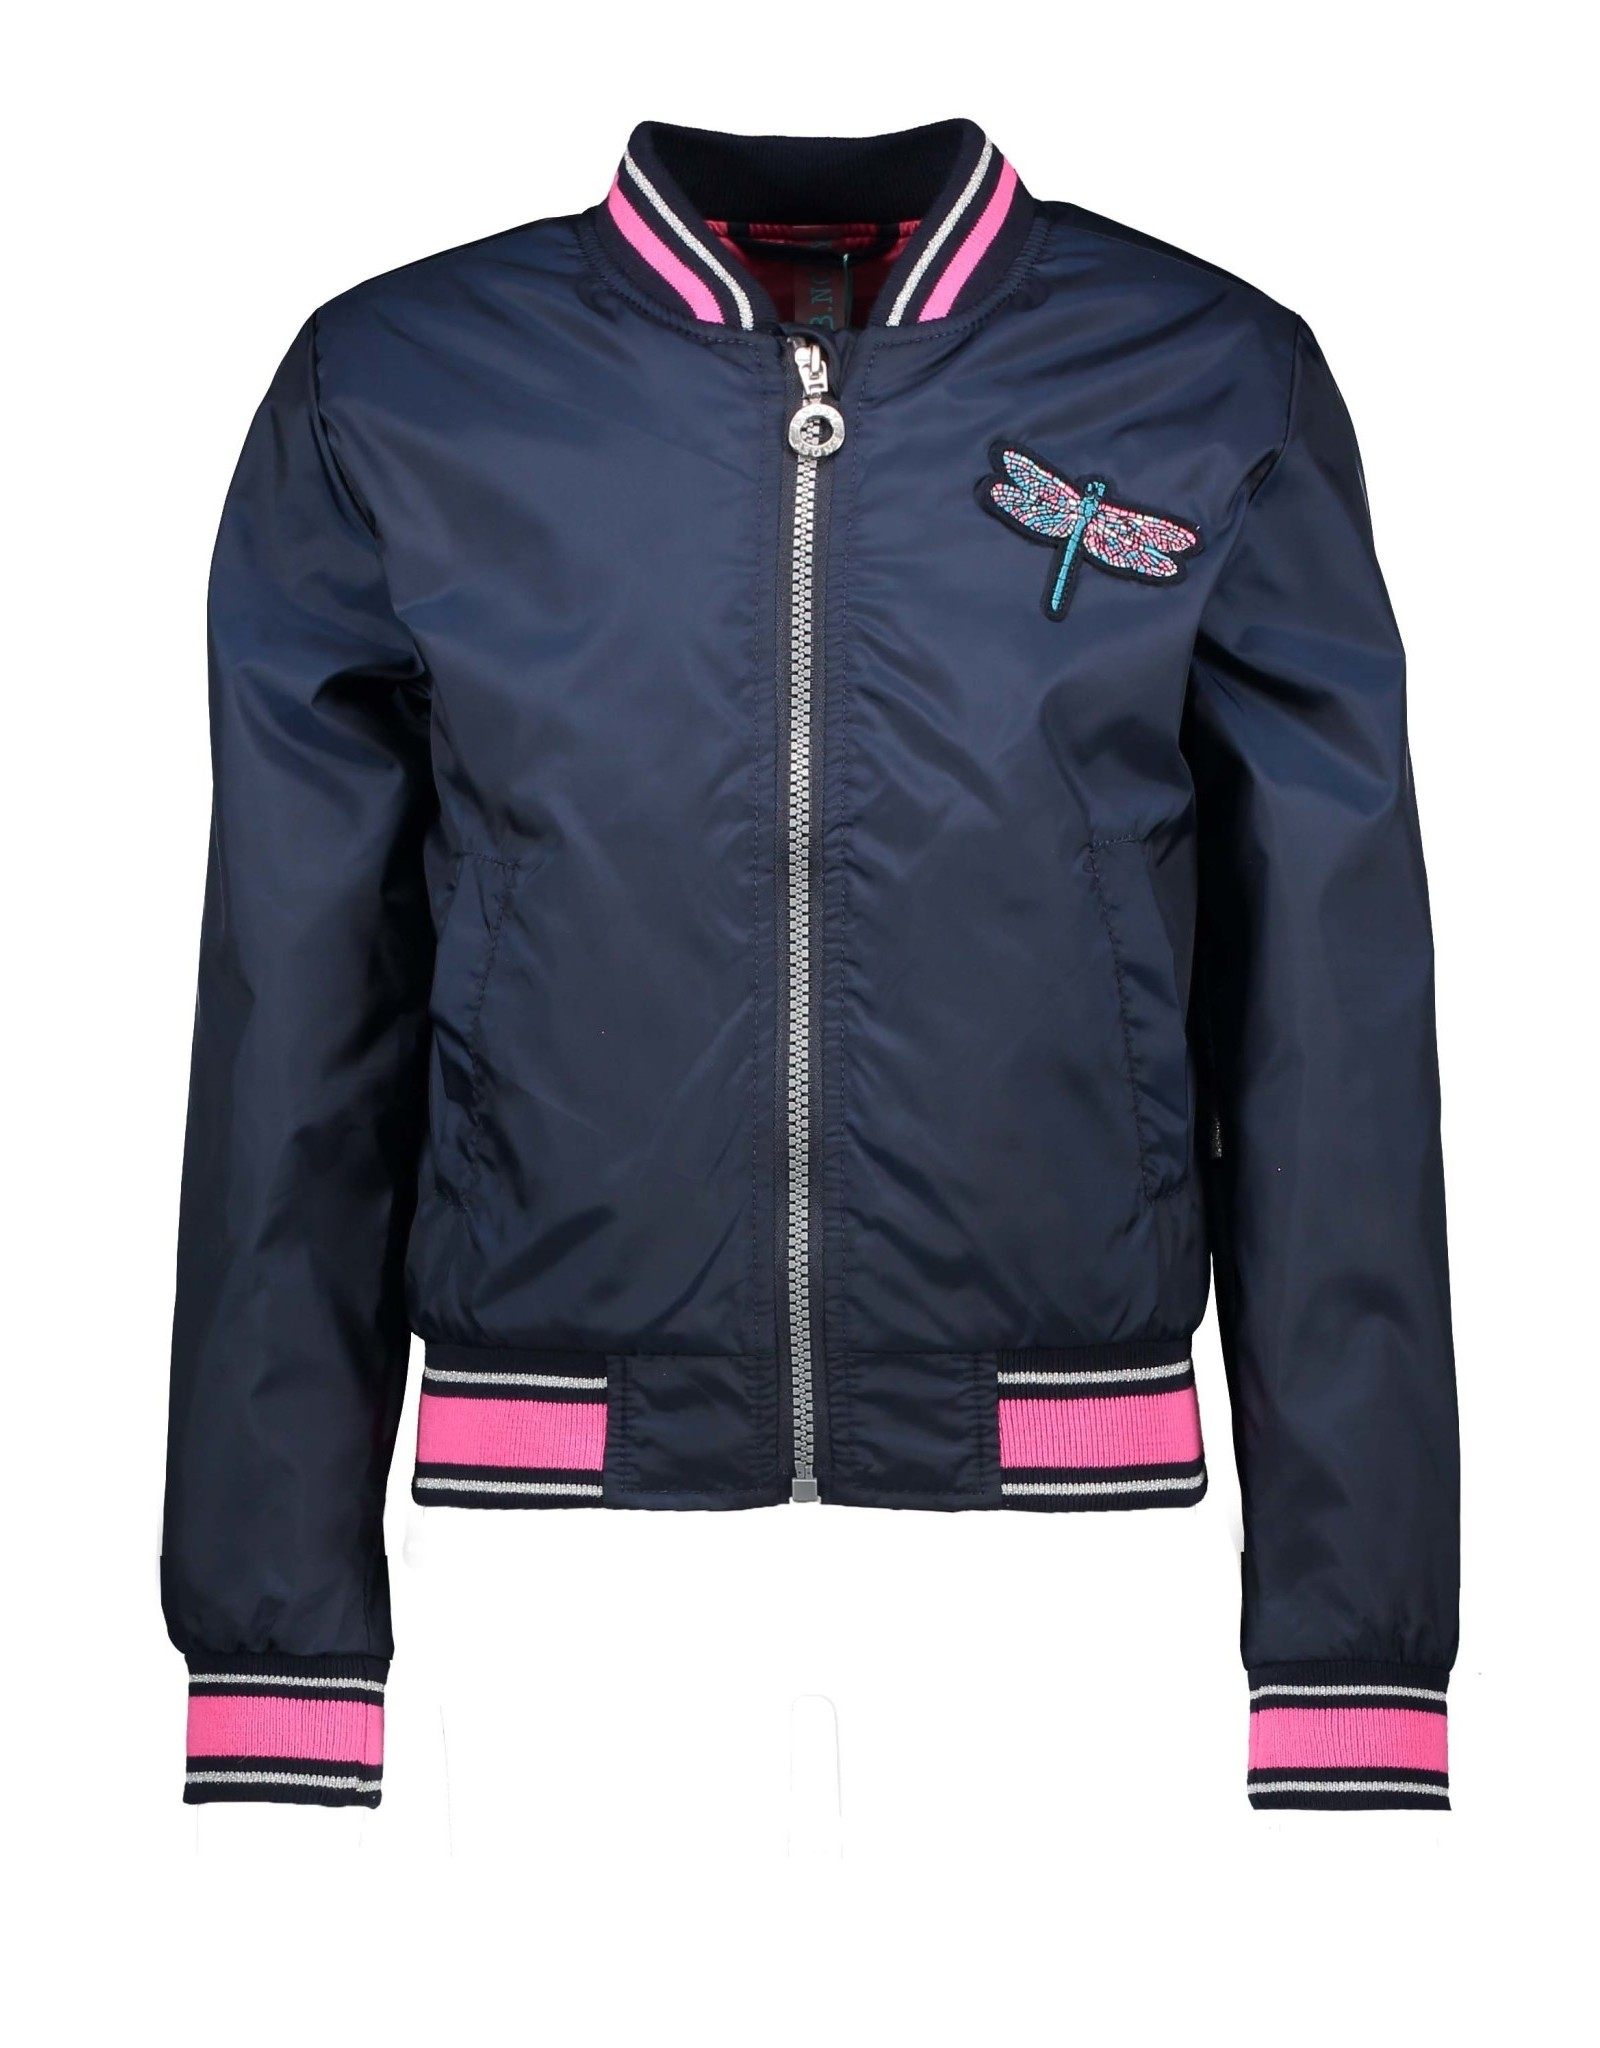 B-nosy Jacket with patch on chest and artwork on backside 146 Space blue